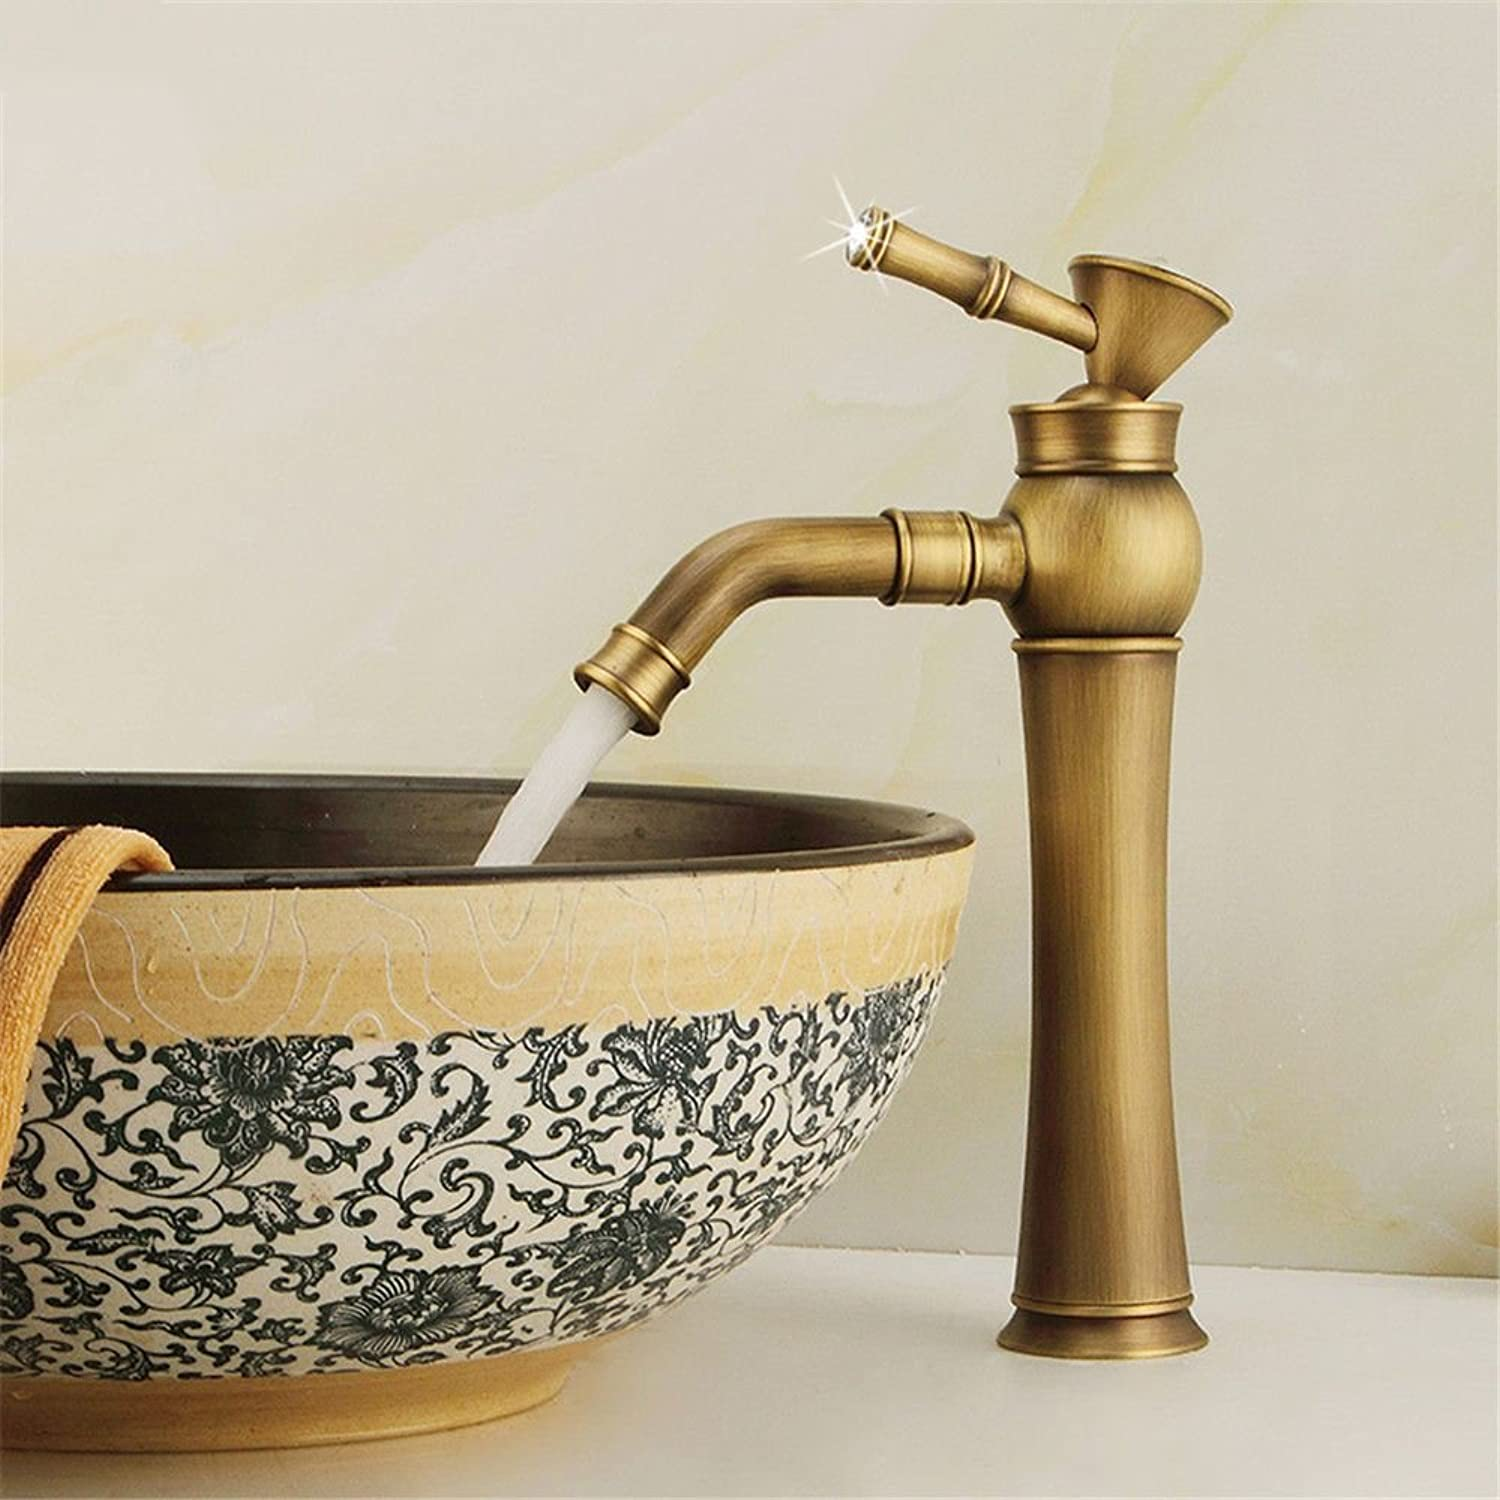 AQMMi Basin Sink Mixer Tap for Lavatory Brass Hot and Cold Water Antique Bathroom Vanity Sink Faucet